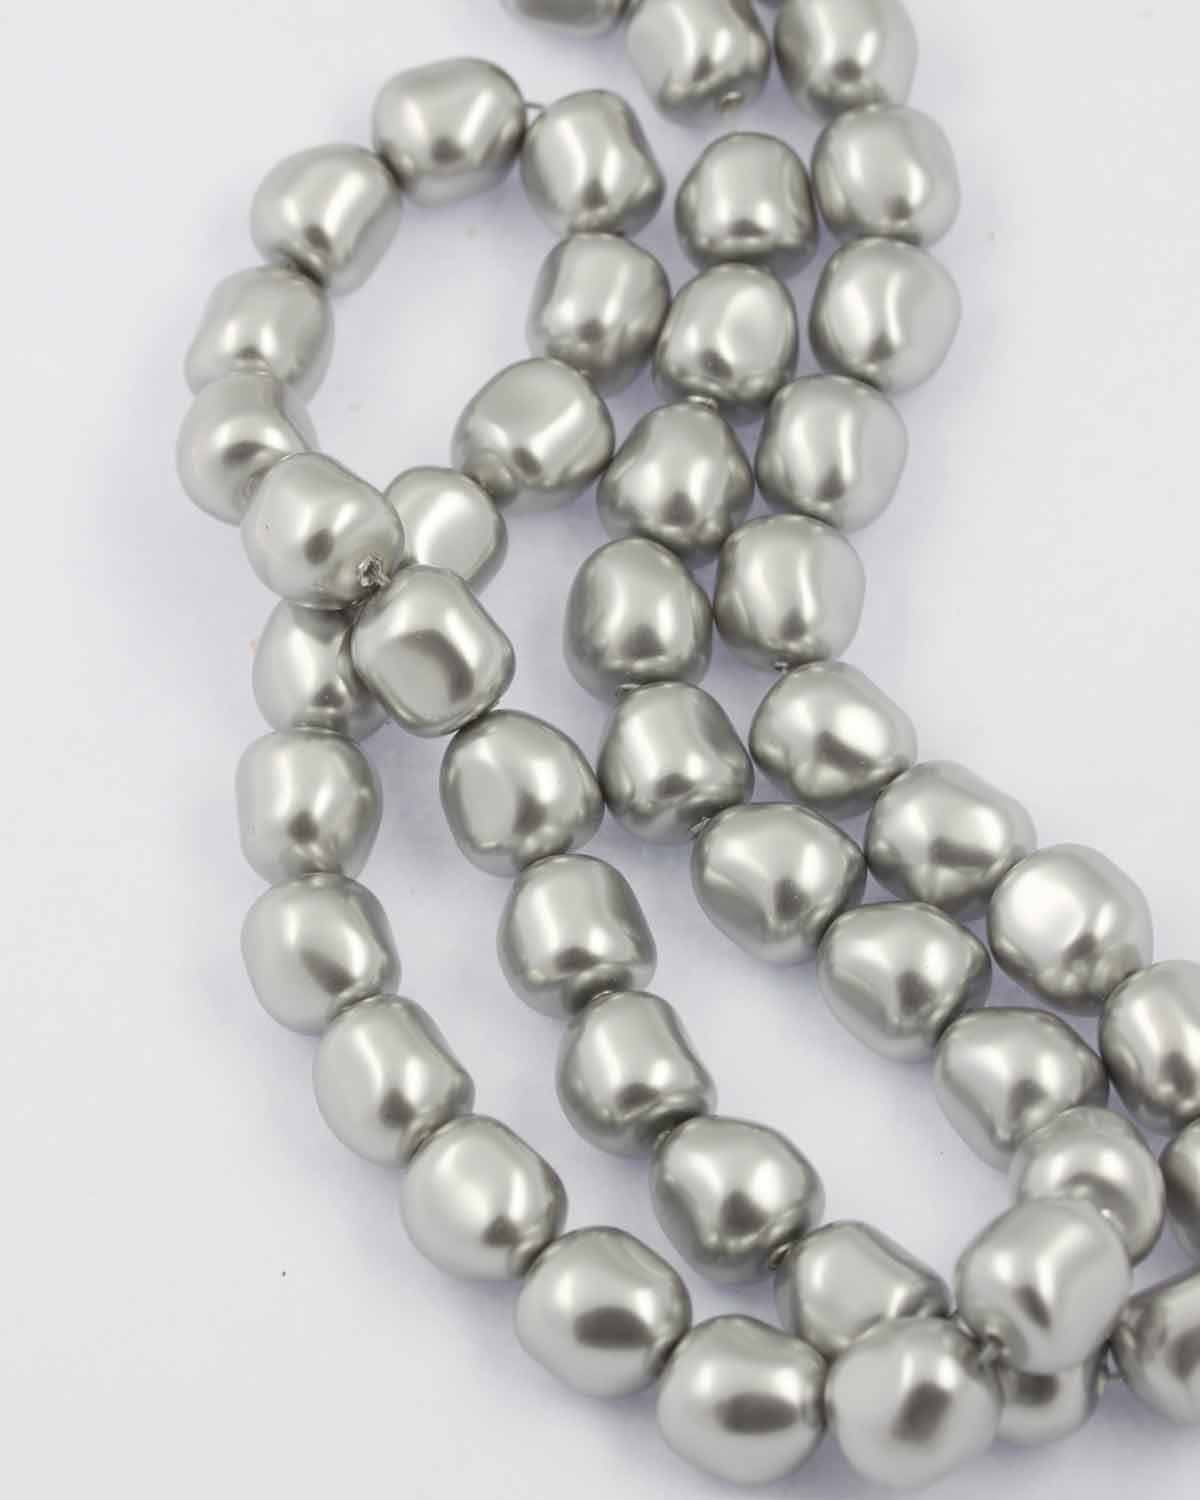 Swarovski Baroque Pearls 12mm 5840 Sold Per Pack Of 10